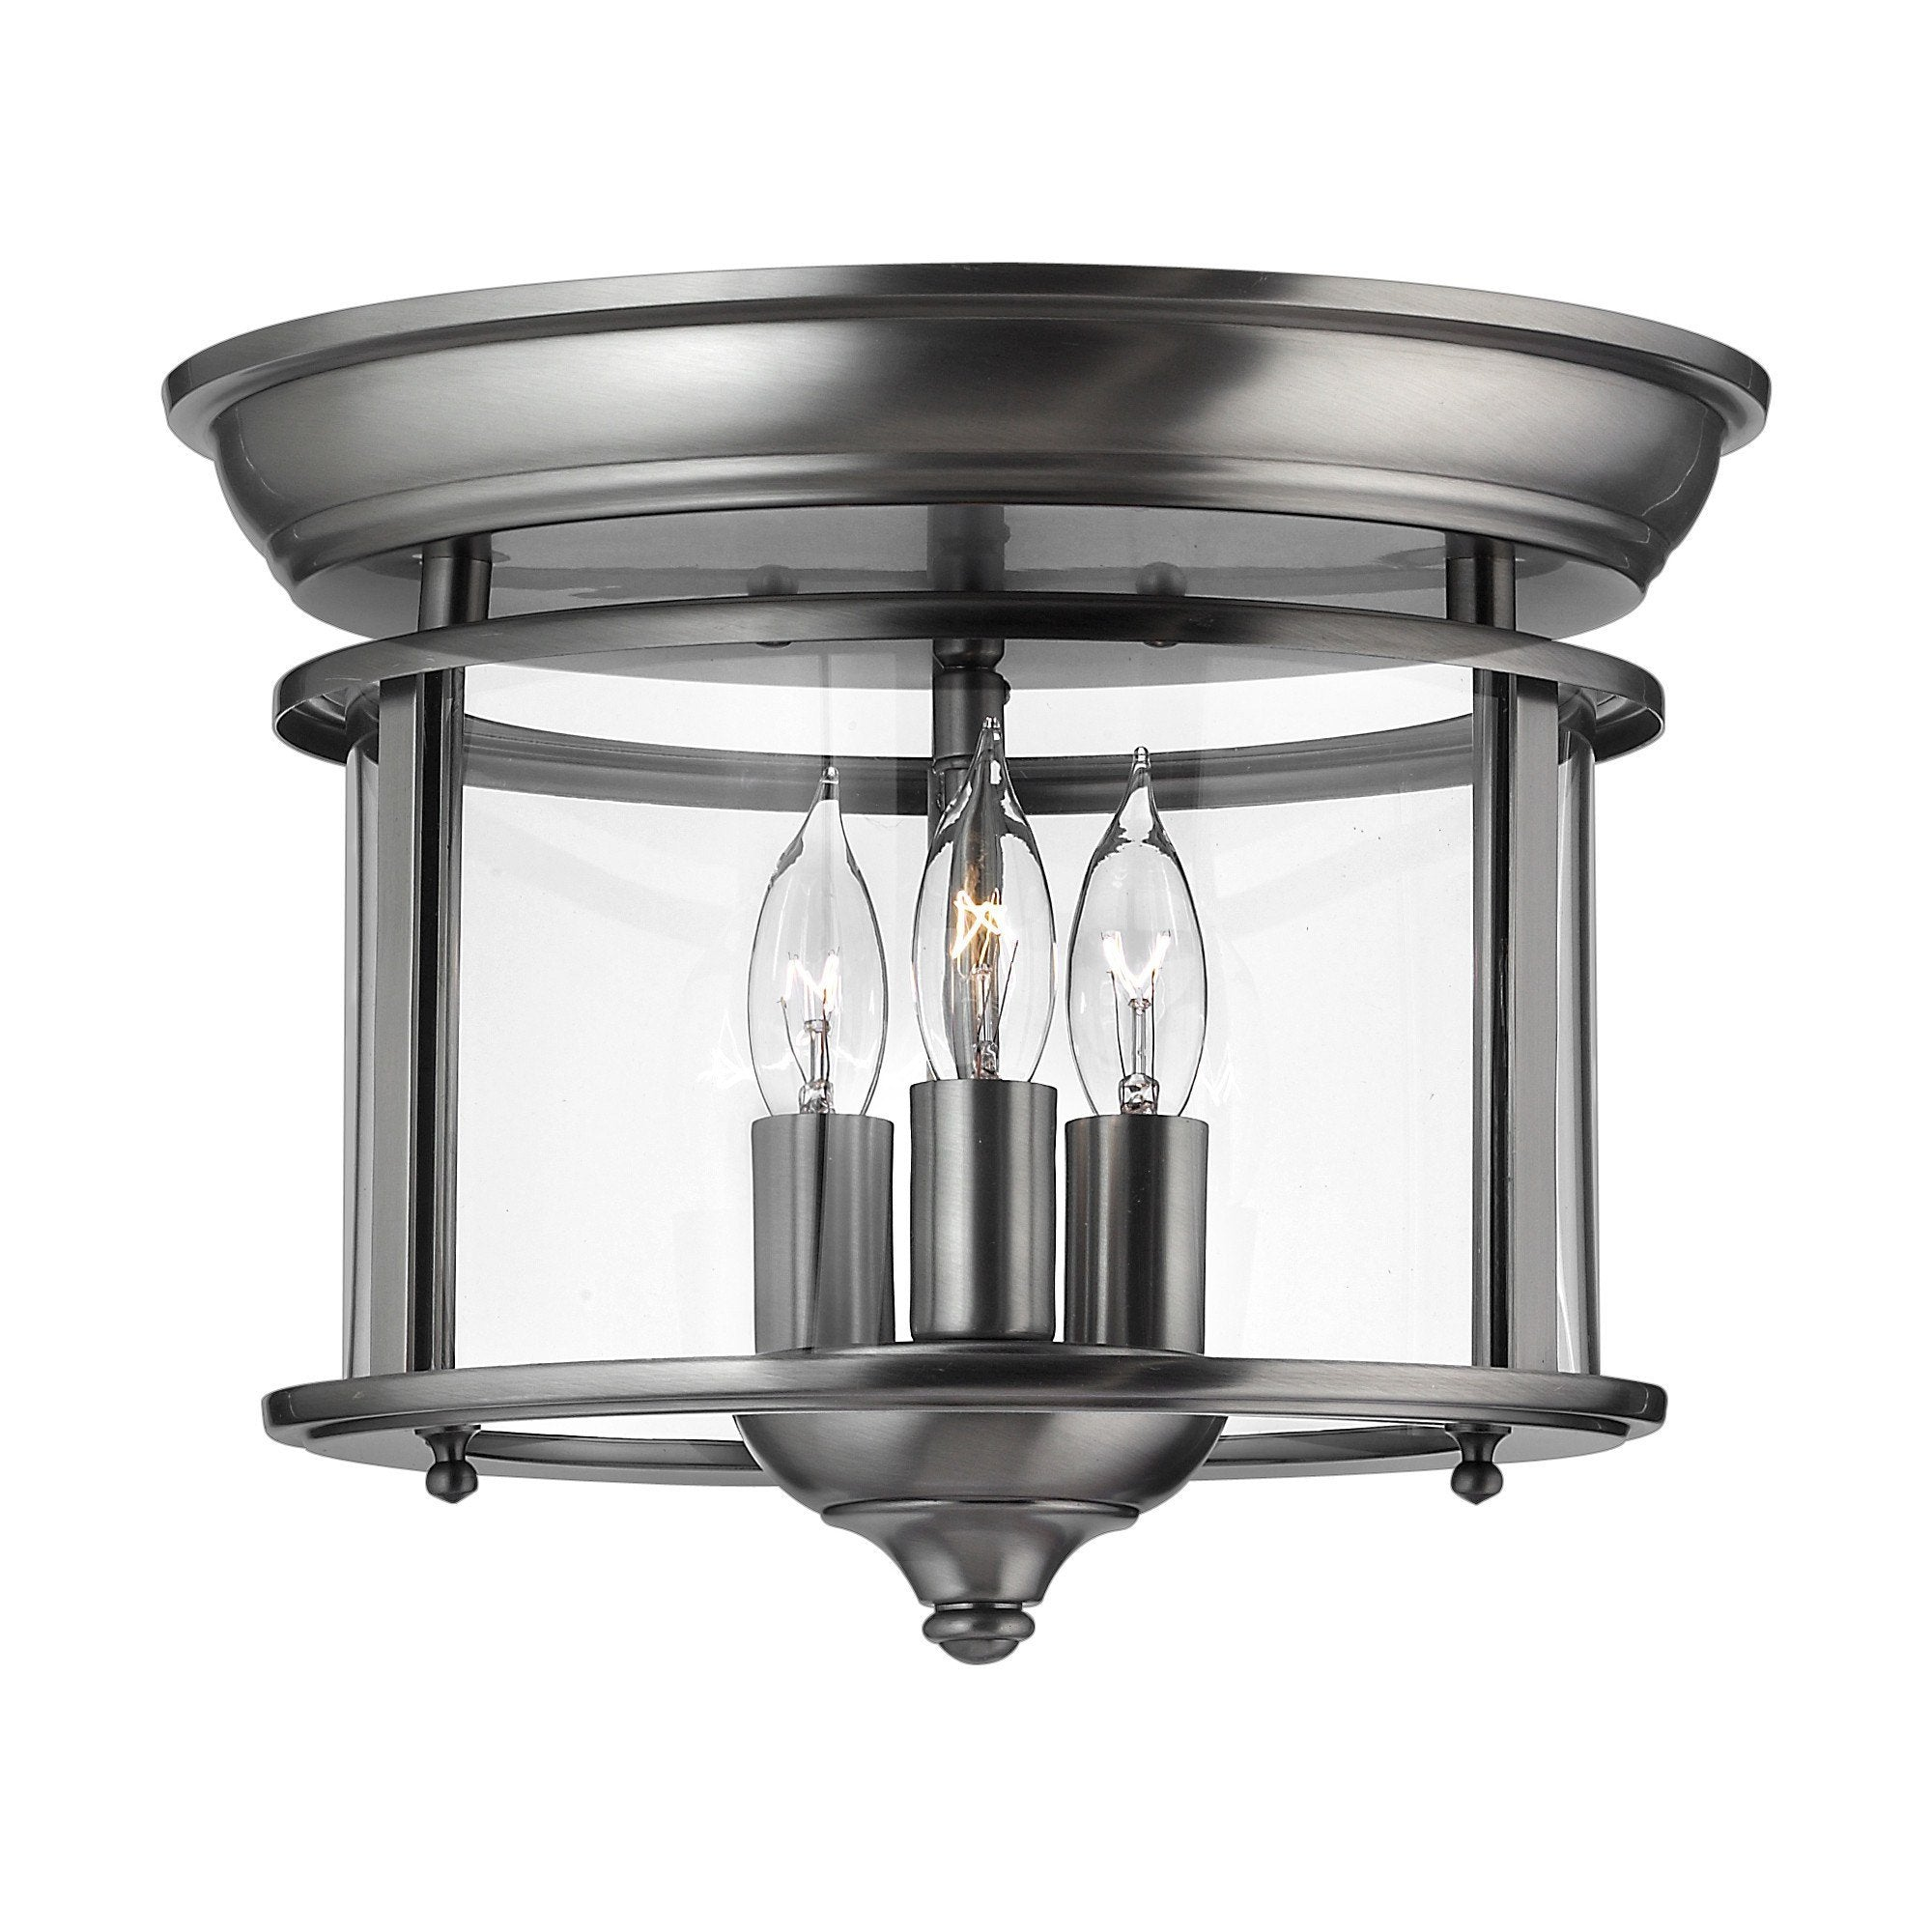 Hinkely Gentry Flush Mount - London Lighting - 2